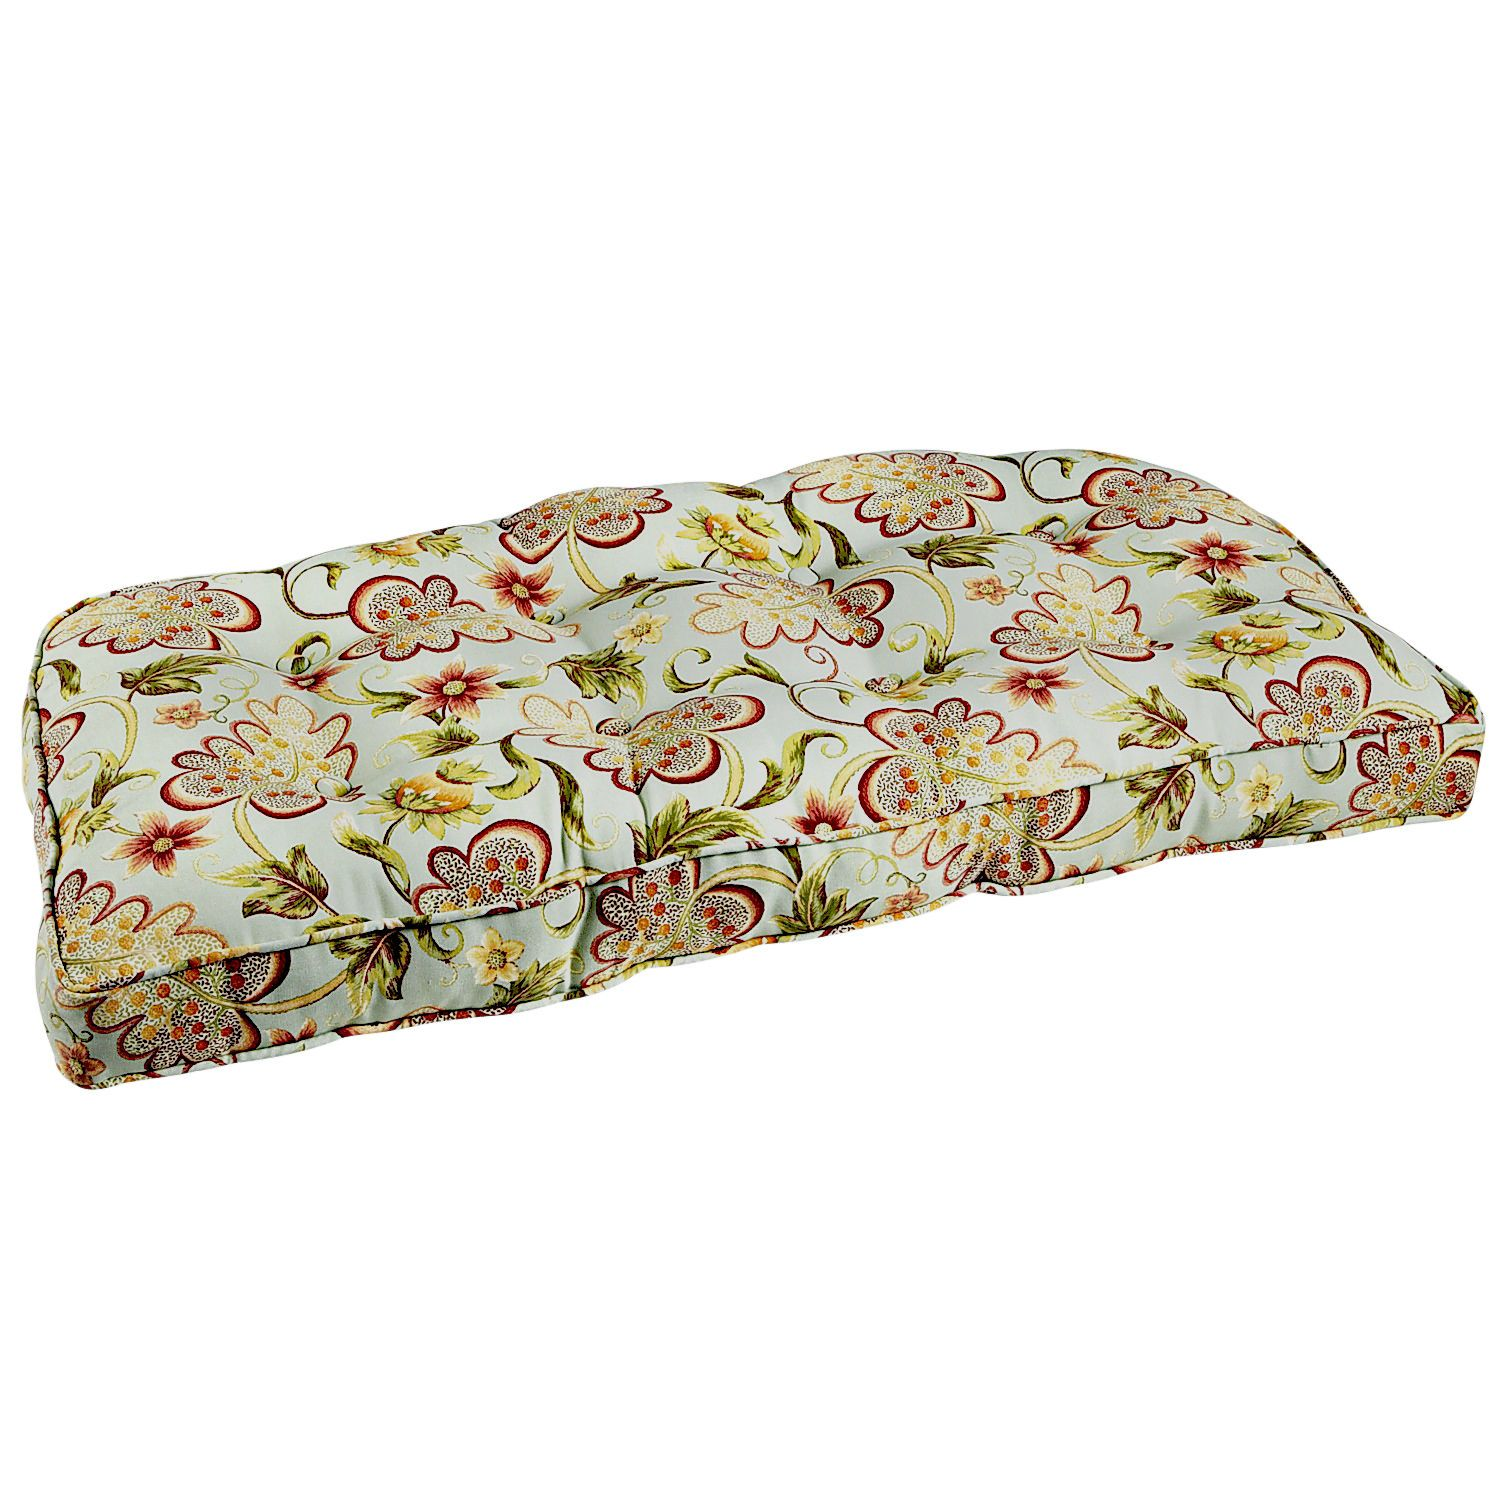 Angelique deluxe settee cushion pier 1 imports settee